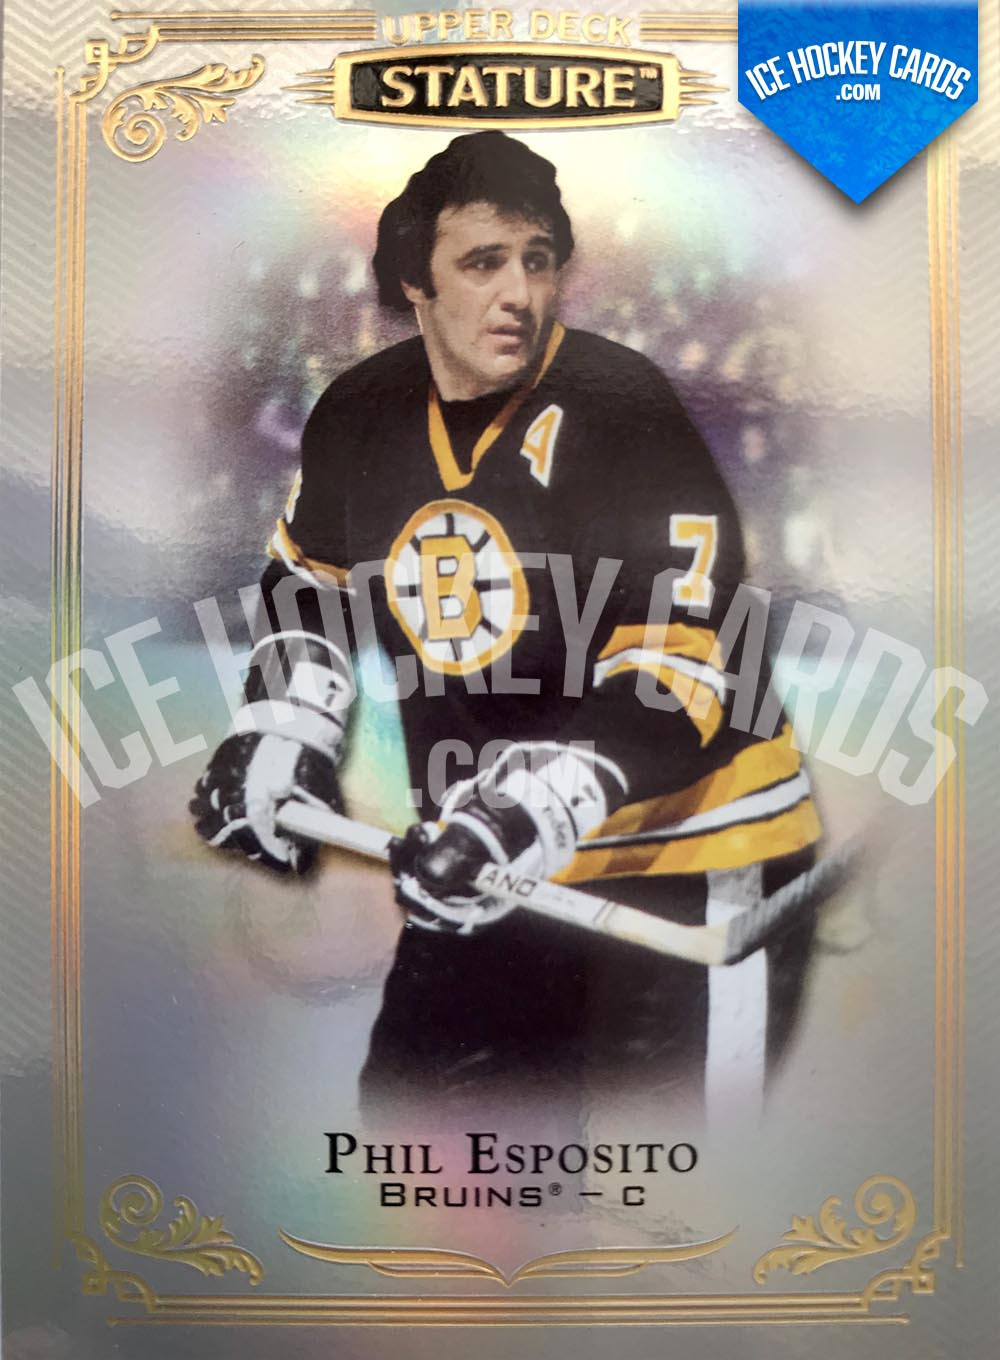 Upper Deck - Stature 2019-20 - Phil Esposito Base Card